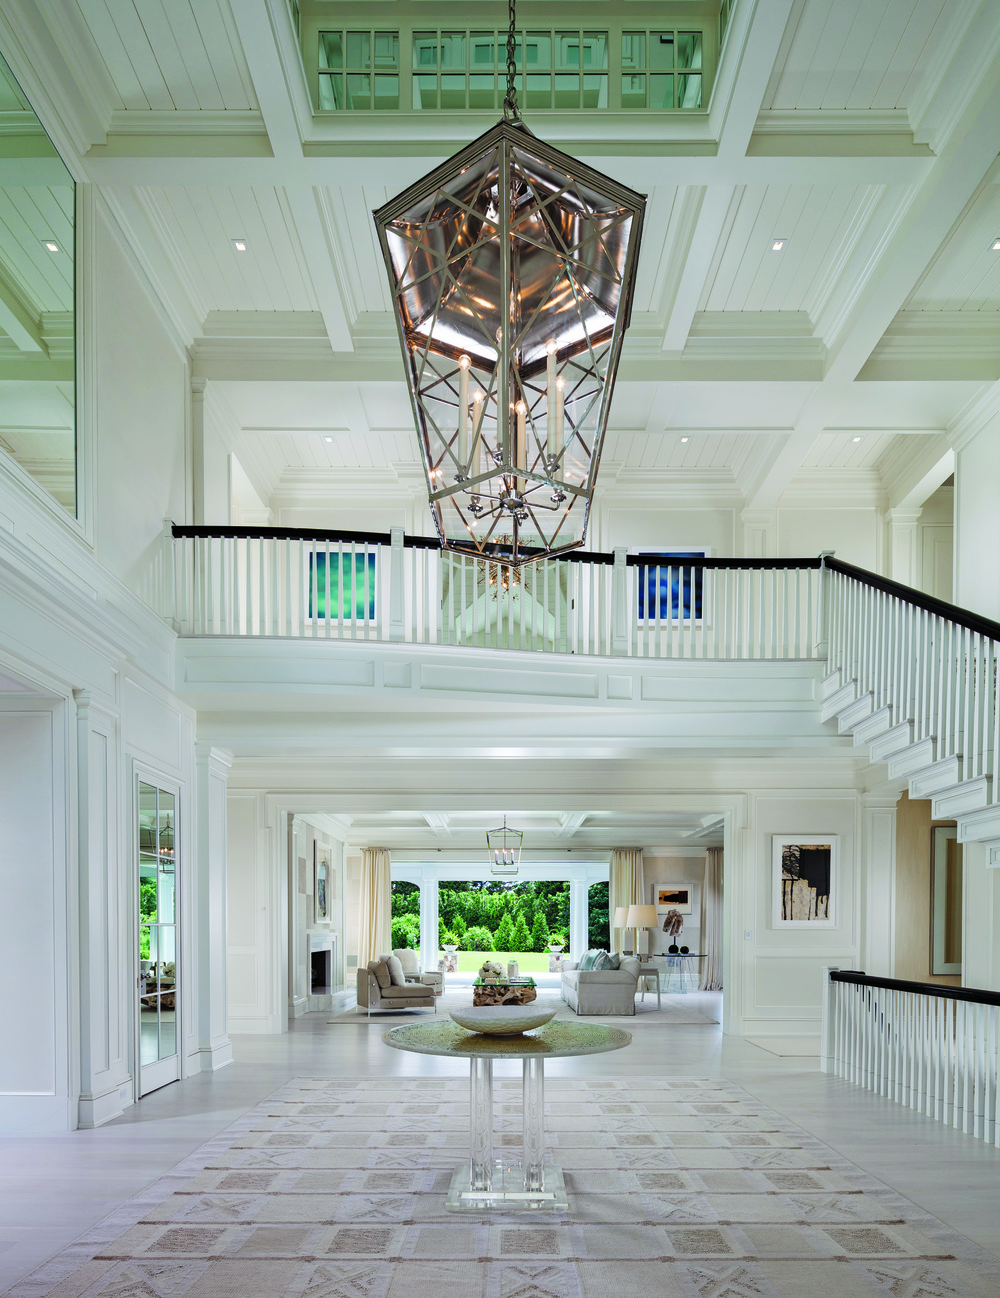 The grand entry foyer is an elegant statement of reflection and light